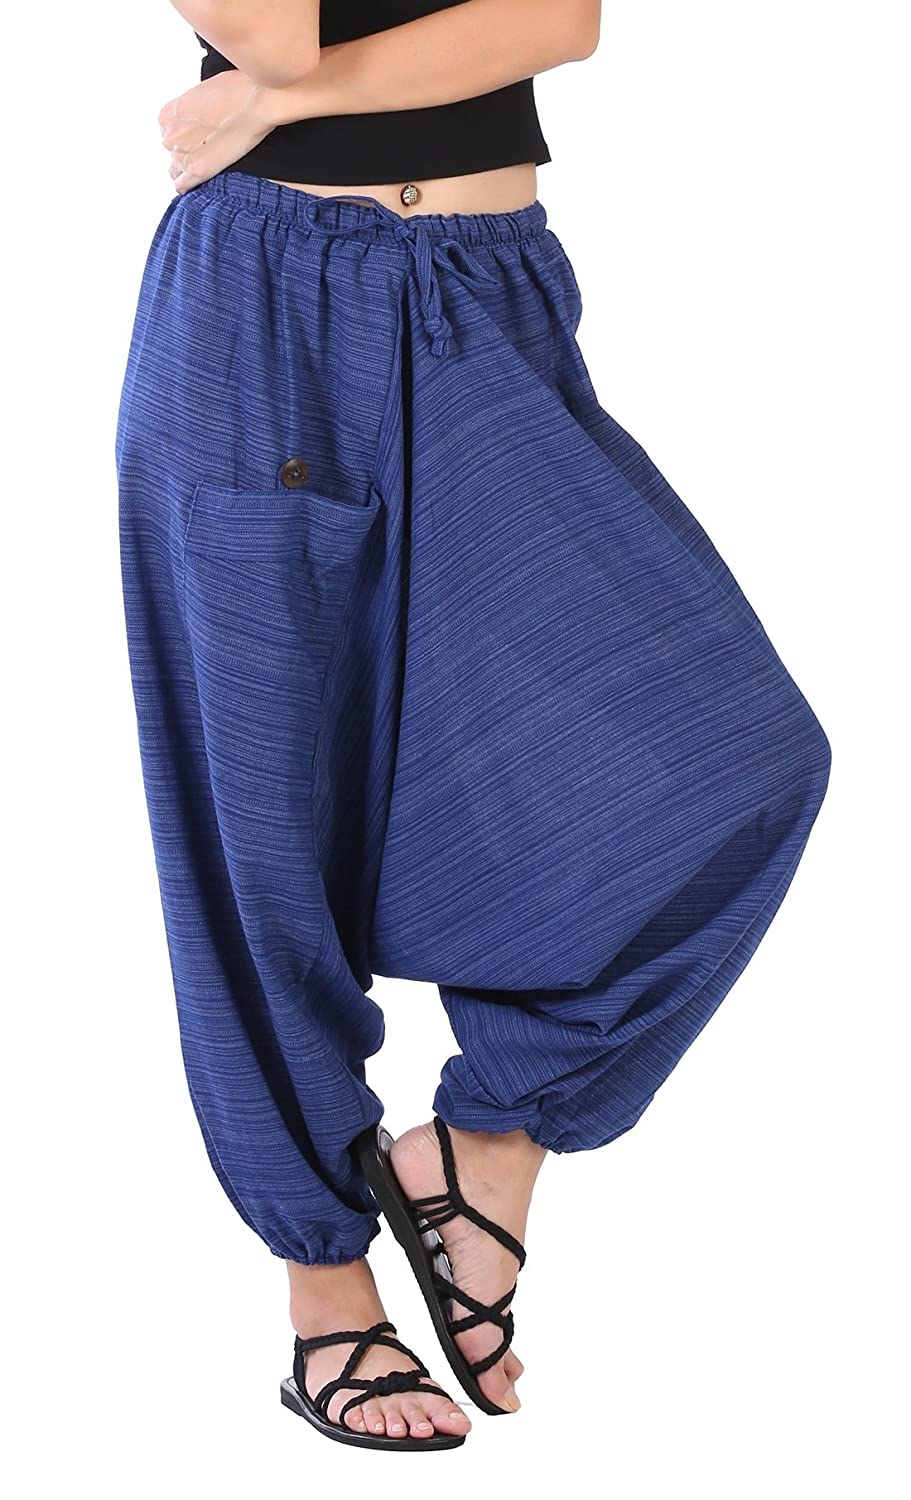 797c47c7d73b2 Elasticated waistband with tie fastening, and elasticated openings at the  ankles. For Yoga, Thai massage, Maternity, Casual, For Summmer, Beach, ...